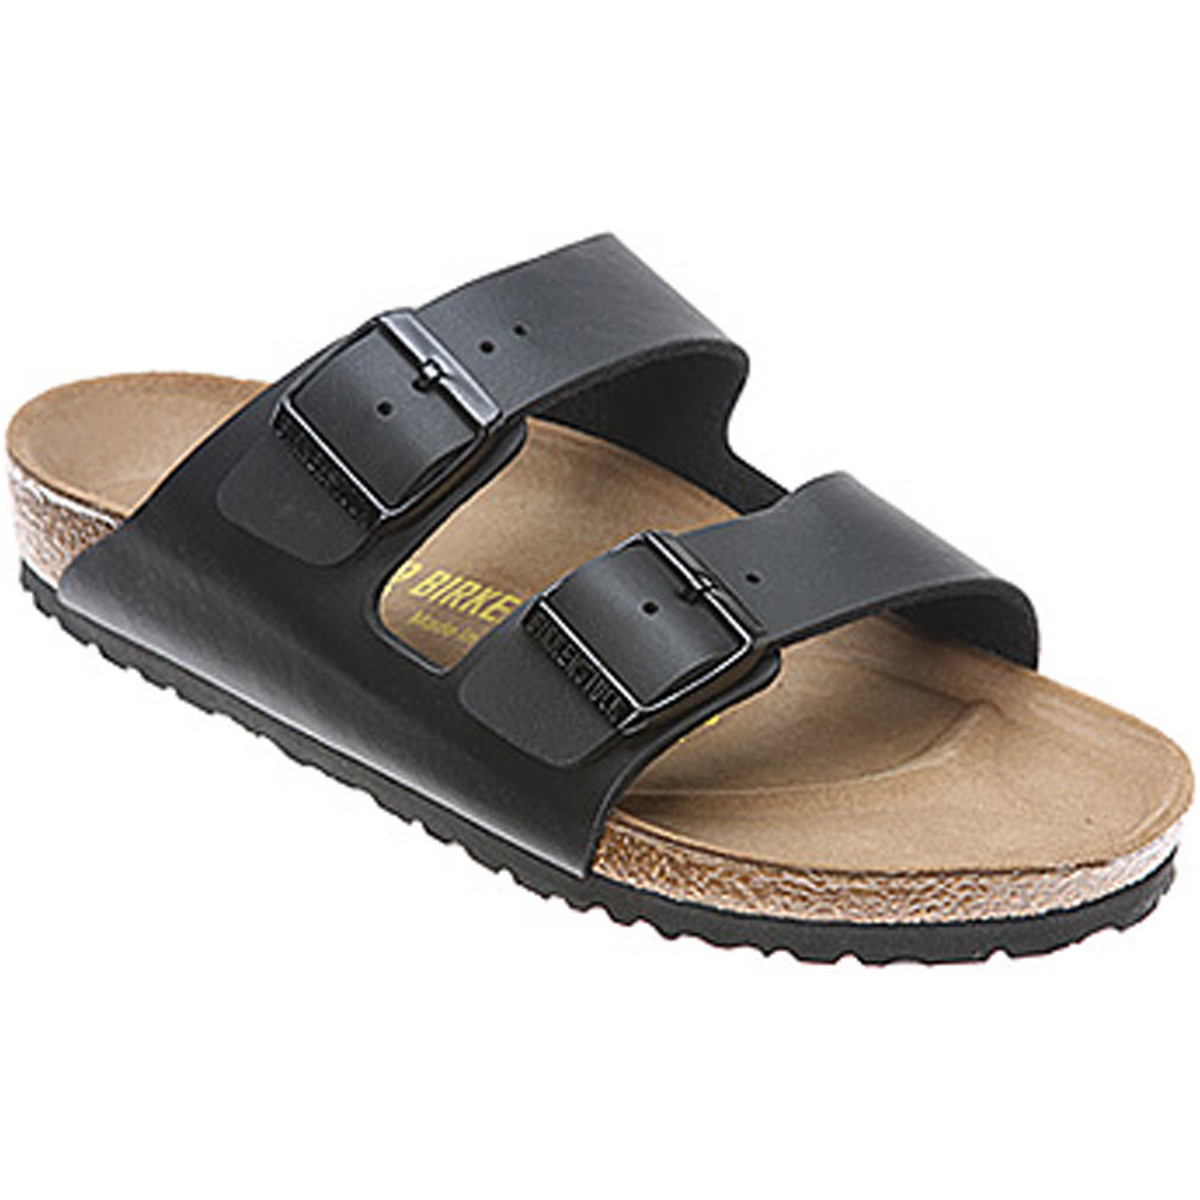 birkenstock arizona sandales 051793 noir 41 45 nero chaussures sandale homme 75 99. Black Bedroom Furniture Sets. Home Design Ideas